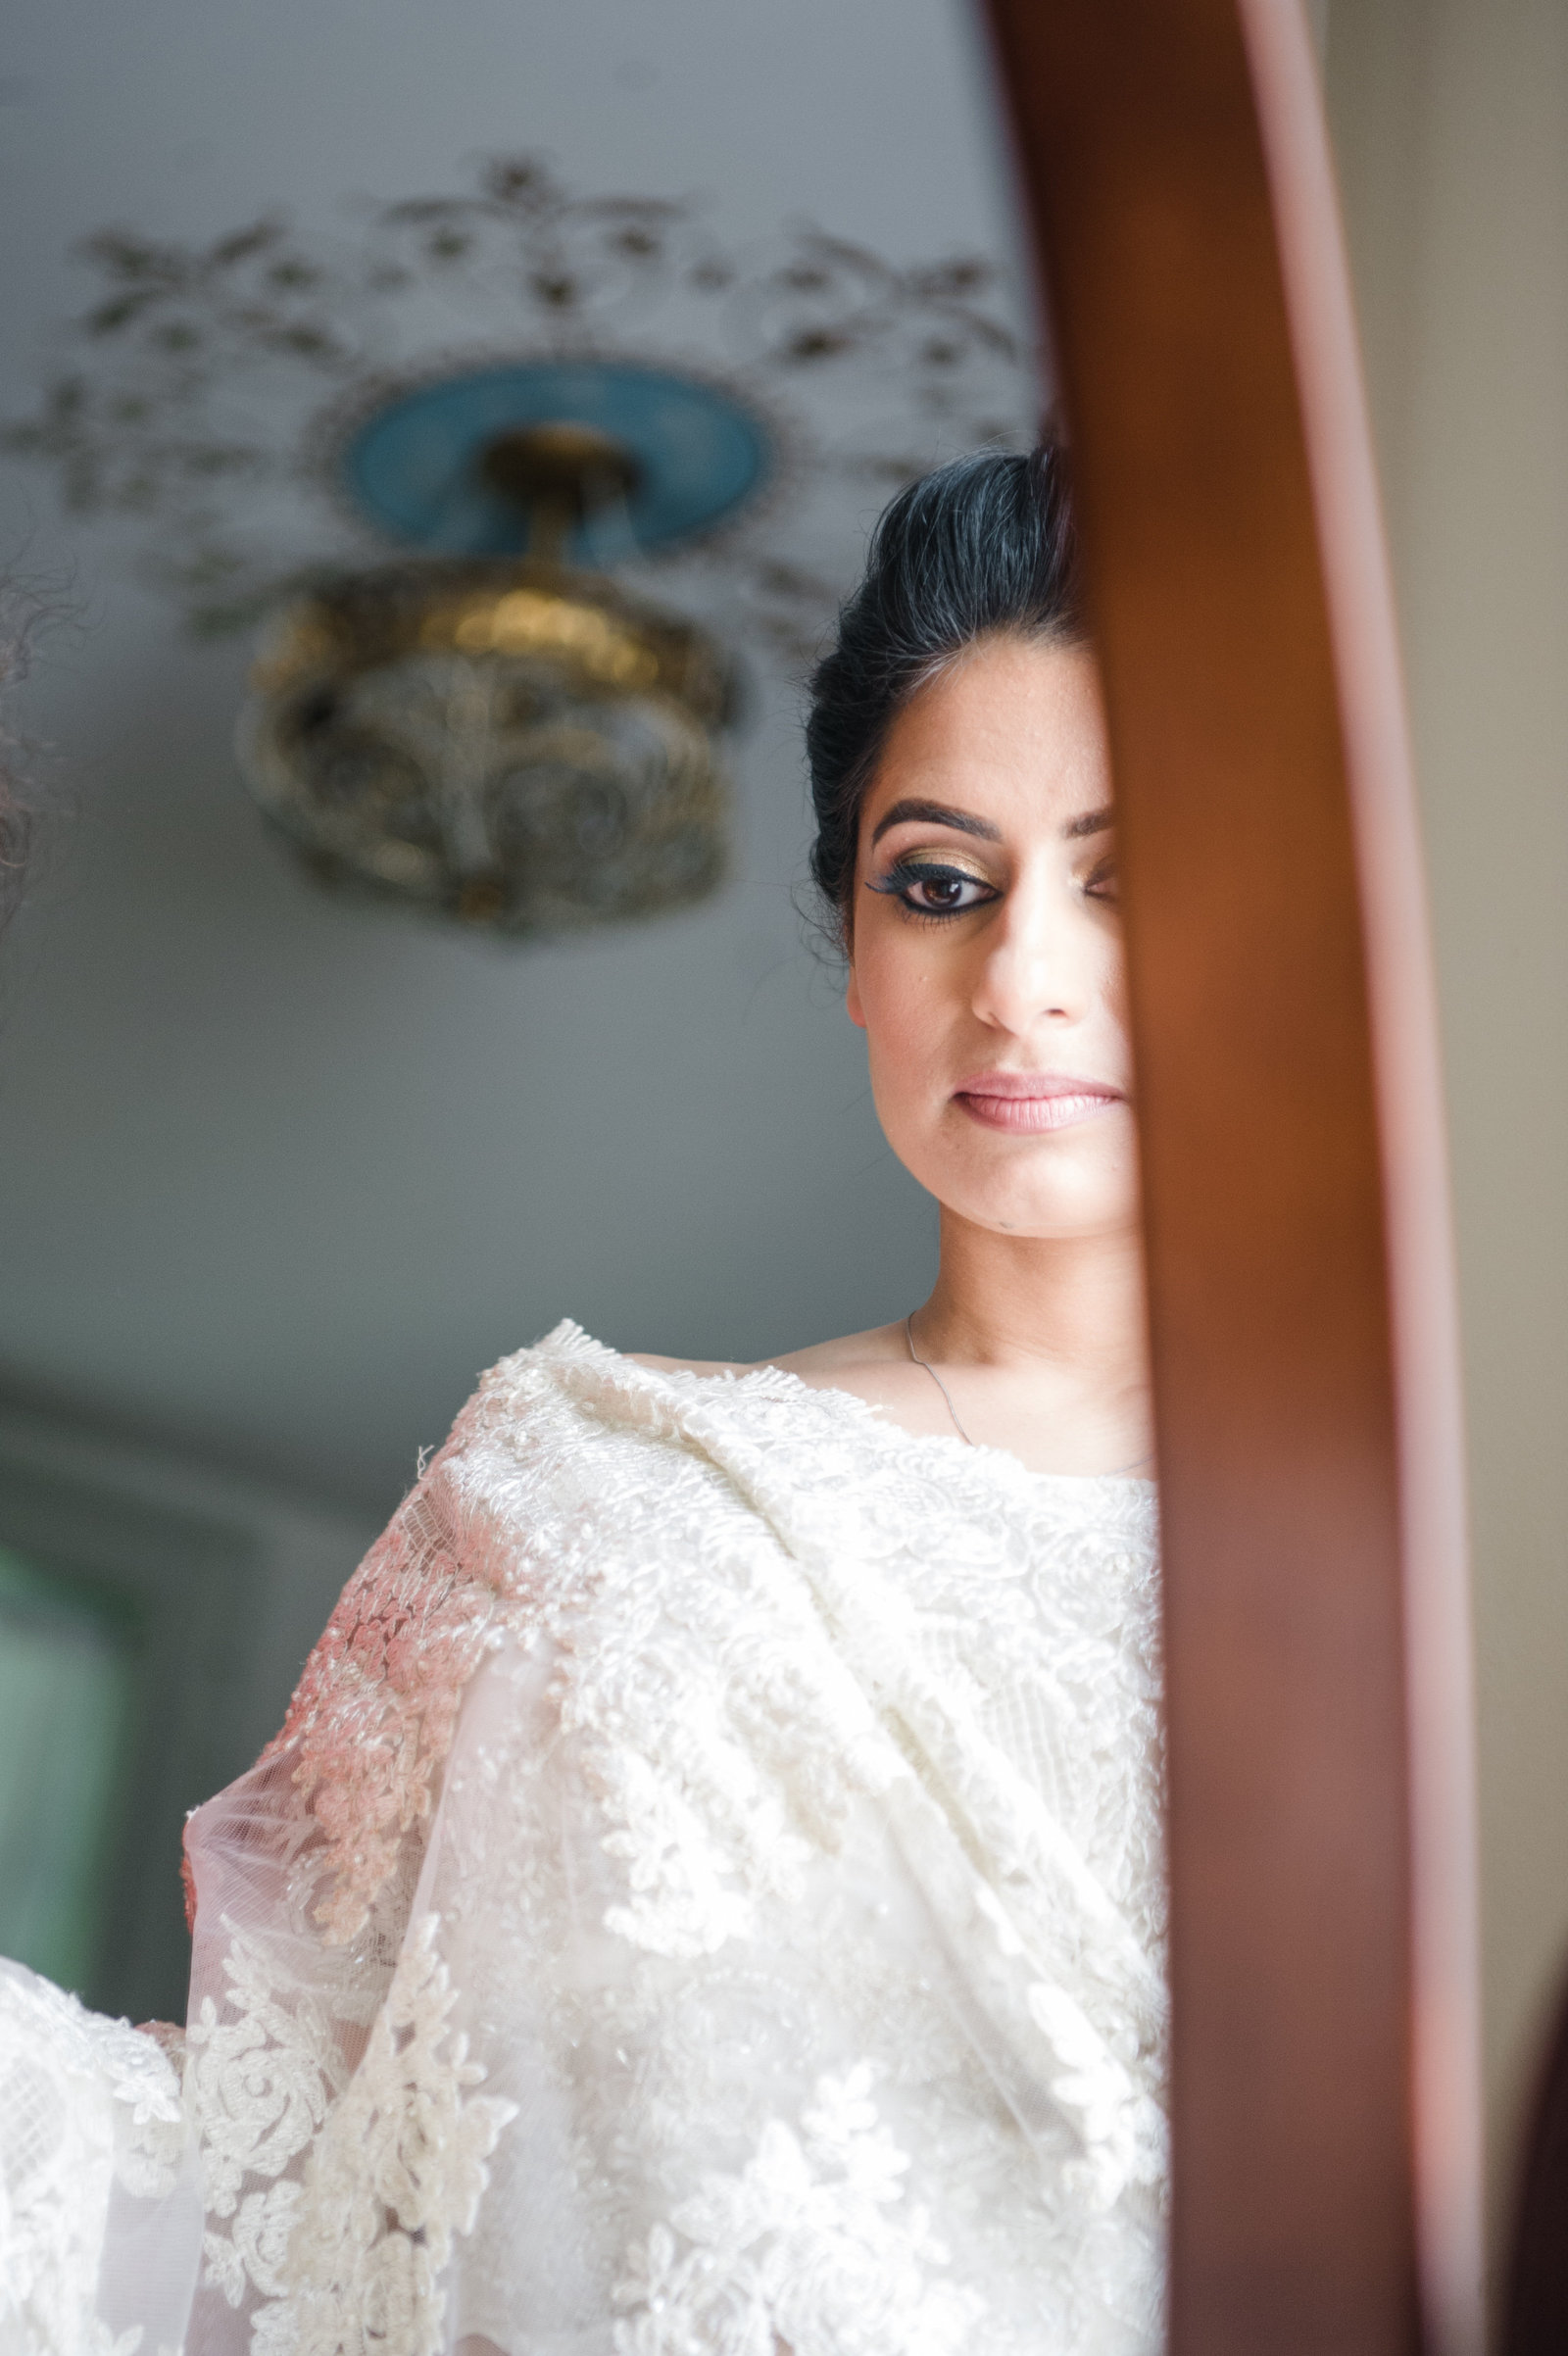 Minhas-Sohail Wedding by The Hill Studios-57